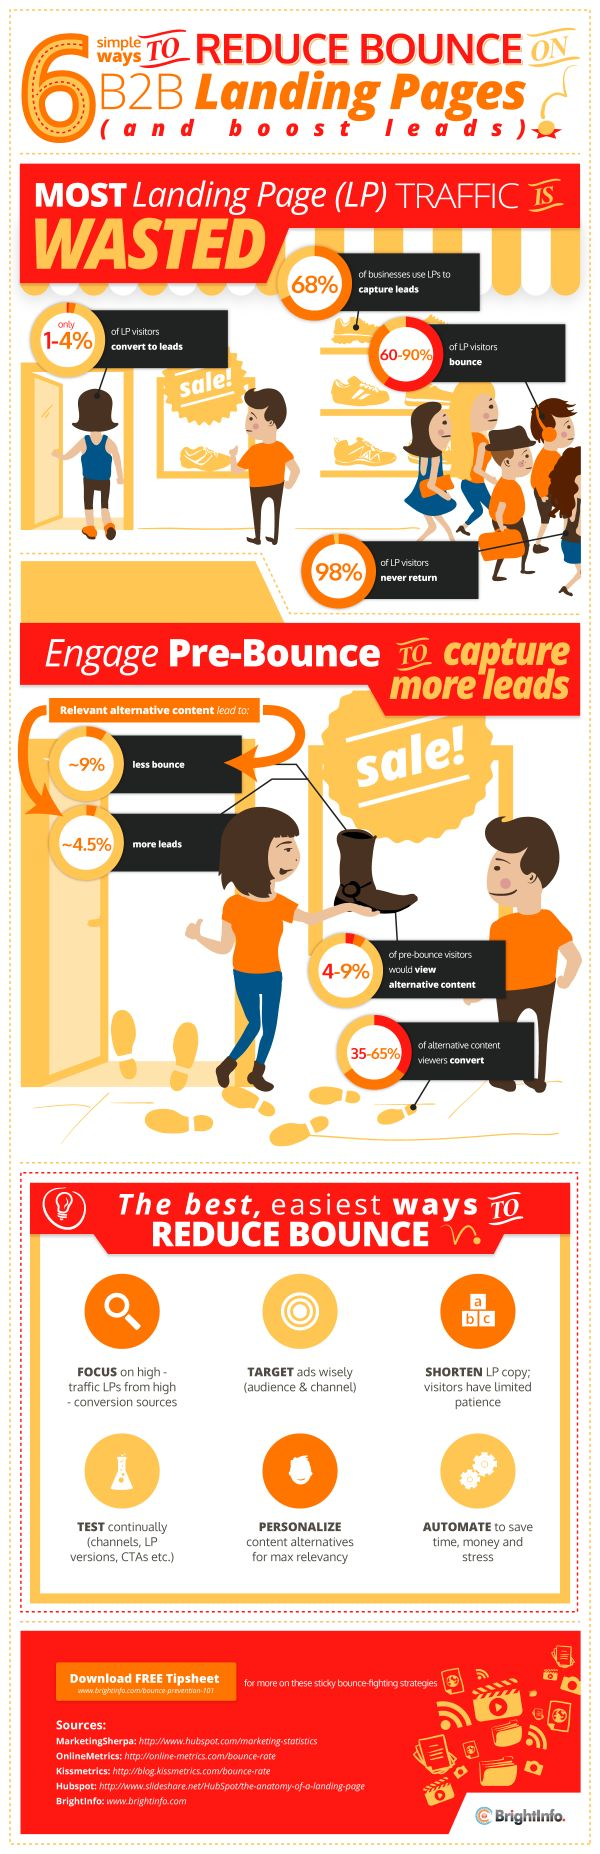 Six simple ways to reduce bounce rate on your B2B landing pages [Infographic]